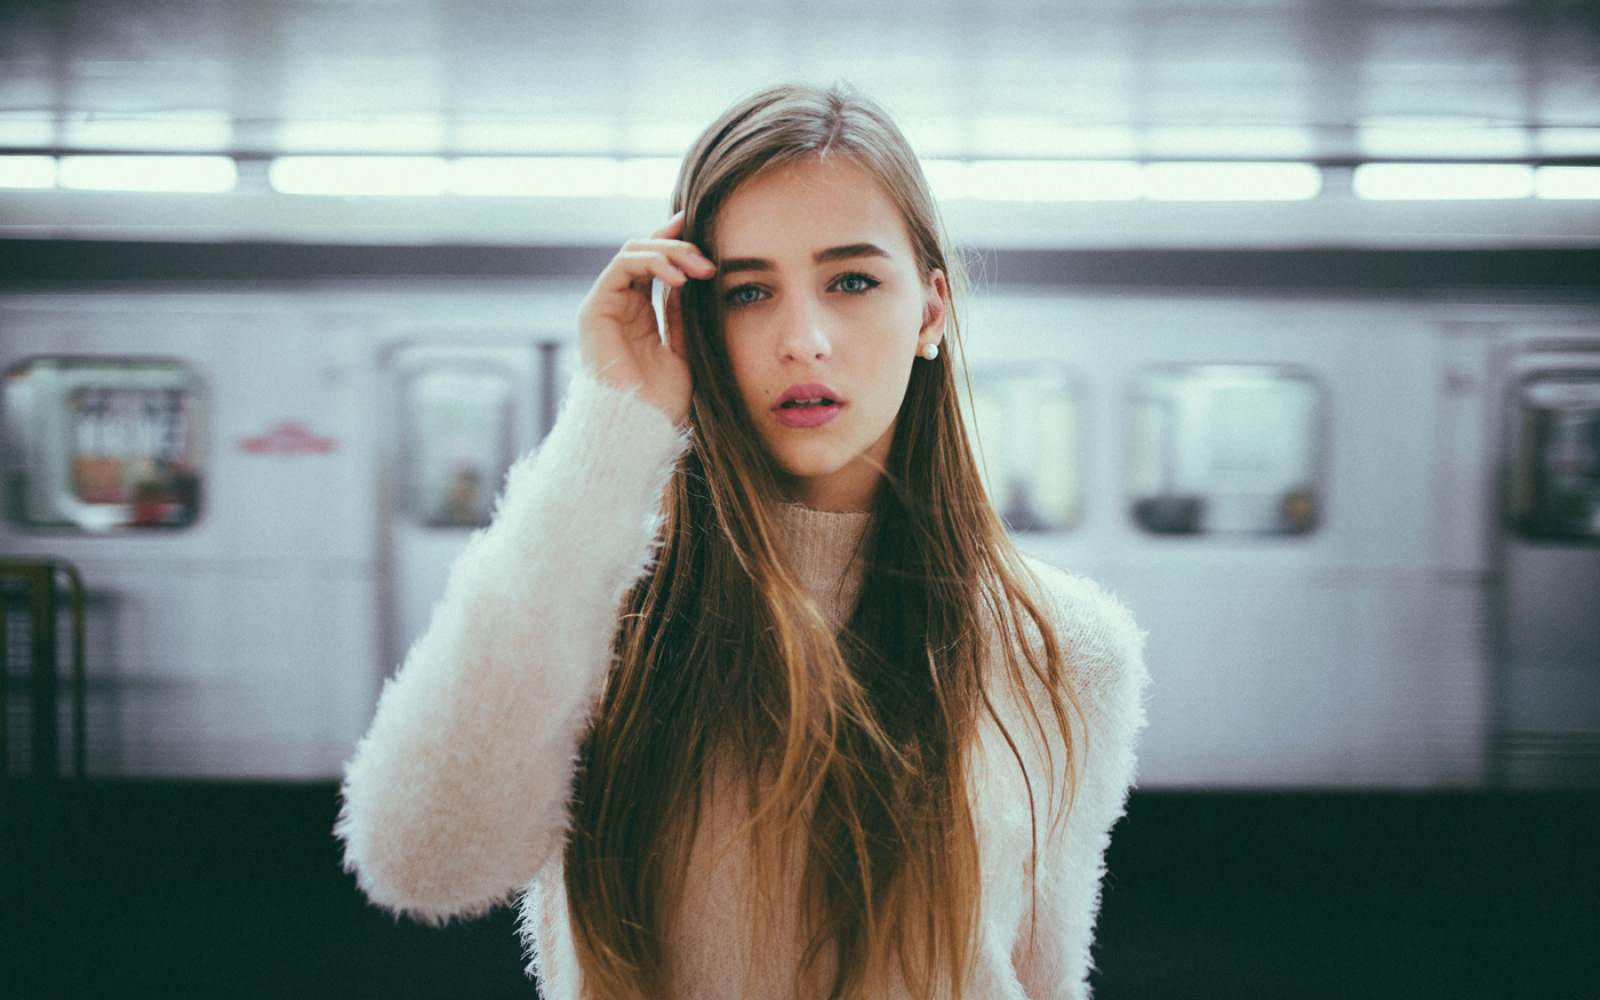 12 Quotes Every Over-Thinker Will Understand and Appreciate